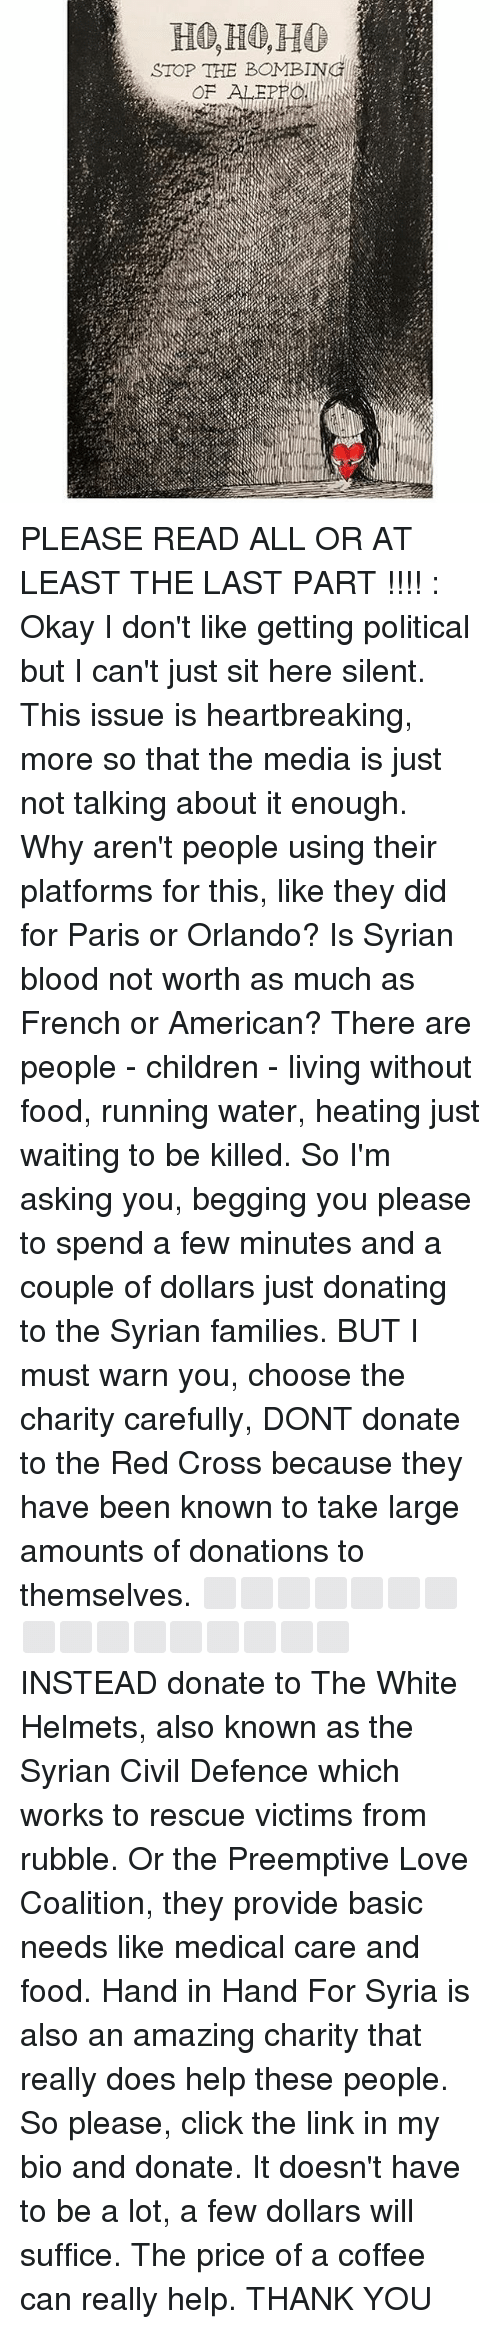 Bloods, Memes, and Politics: STOP THE BOMBING  OF ALE PLEASE READ ALL OR AT LEAST THE LAST PART !!!! : Okay I don't like getting political but I can't just sit here silent. This issue is heartbreaking, more so that the media is just not talking about it enough. Why aren't people using their platforms for this, like they did for Paris or Orlando? Is Syrian blood not worth as much as French or American? There are people - children - living without food, running water, heating just waiting to be killed. So I'm asking you, begging you please to spend a few minutes and a couple of dollars just donating to the Syrian families. BUT I must warn you, choose the charity carefully, DONT donate to the Red Cross because they have been known to take large amounts of donations to themselves. ⬜️⬜️⬜️⬜️⬜️⬜️⬜️⬜️⬜️⬜️⬜️⬜️⬜️⬜️⬜️⬜️ INSTEAD donate to The White Helmets, also known as the Syrian Civil Defence which works to rescue victims from rubble. Or the Preemptive Love Coalition, they provide basic needs like medical care and food. Hand in Hand For Syria is also an amazing charity that really does help these people. So please, click the link in my bio and donate. It doesn't have to be a lot, a few dollars will suffice. The price of a coffee can really help. THANK YOU